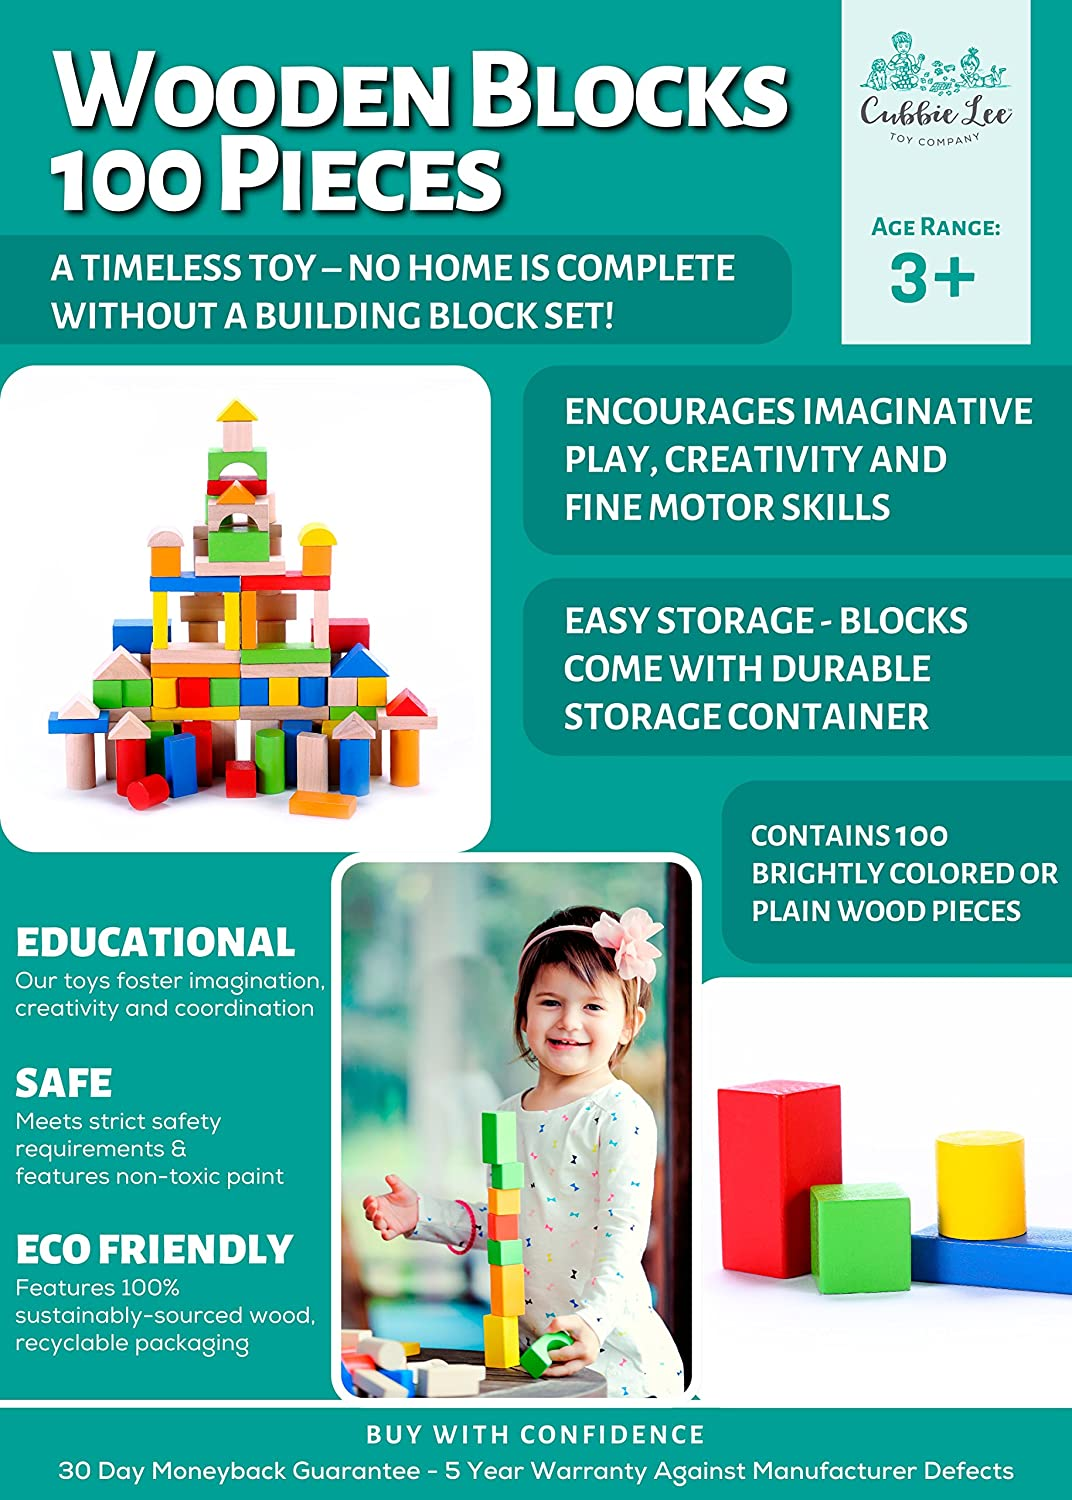 Cubbie Lee Premium Wooden Building Blocks Set 100 pc for Toddlers Preschool Age Classic Hardwood Plain /& Colored Small Wood Block Pieces for Boys /& Girls Classic Build /& Play Toy